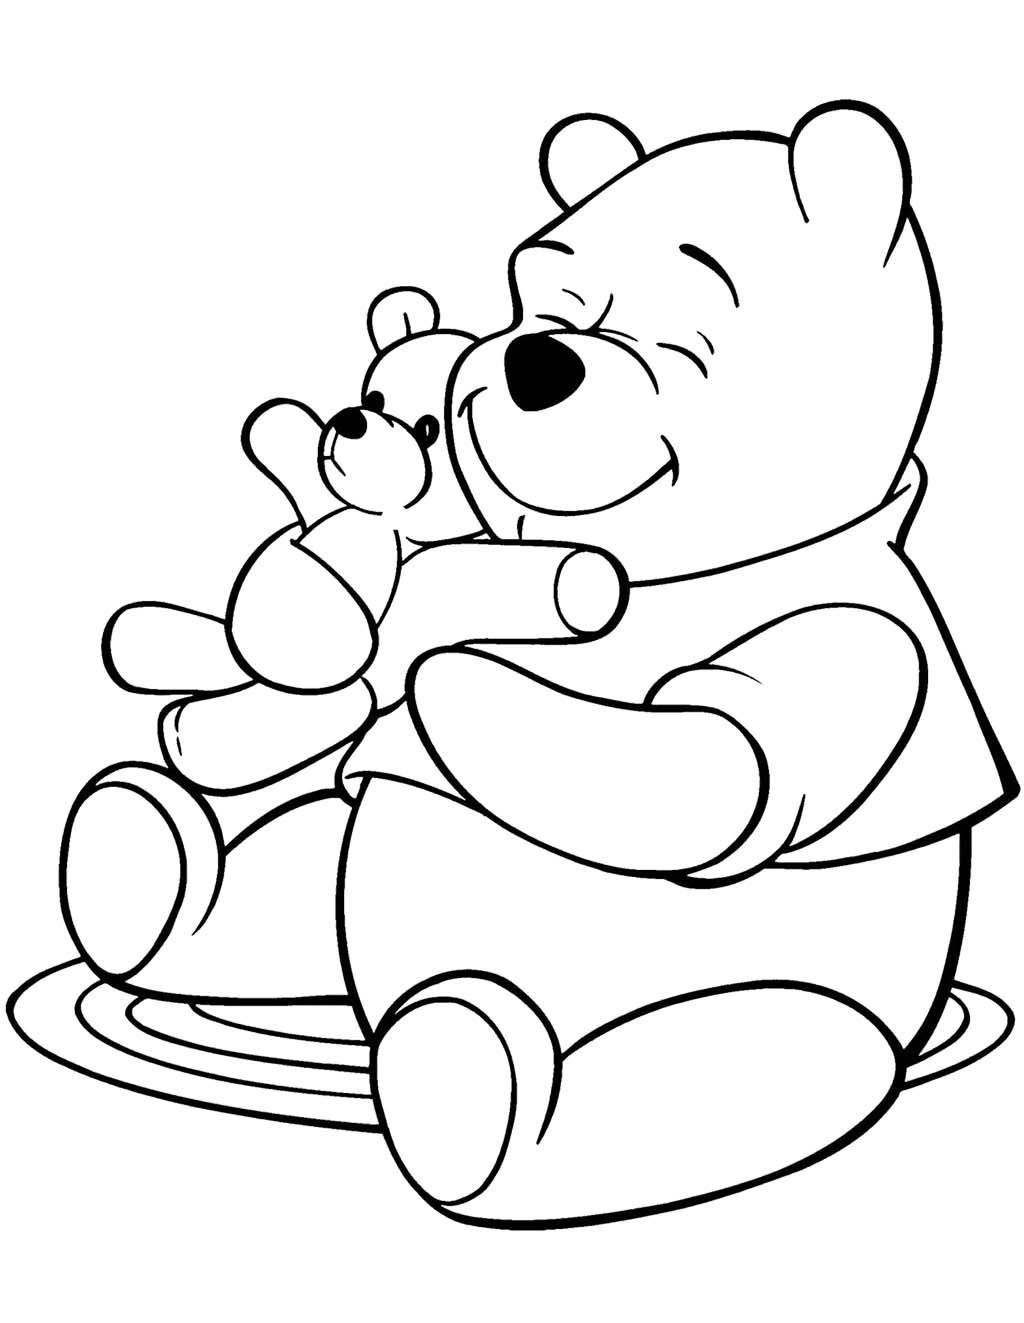 coloring pages of pooh bear - photo#39